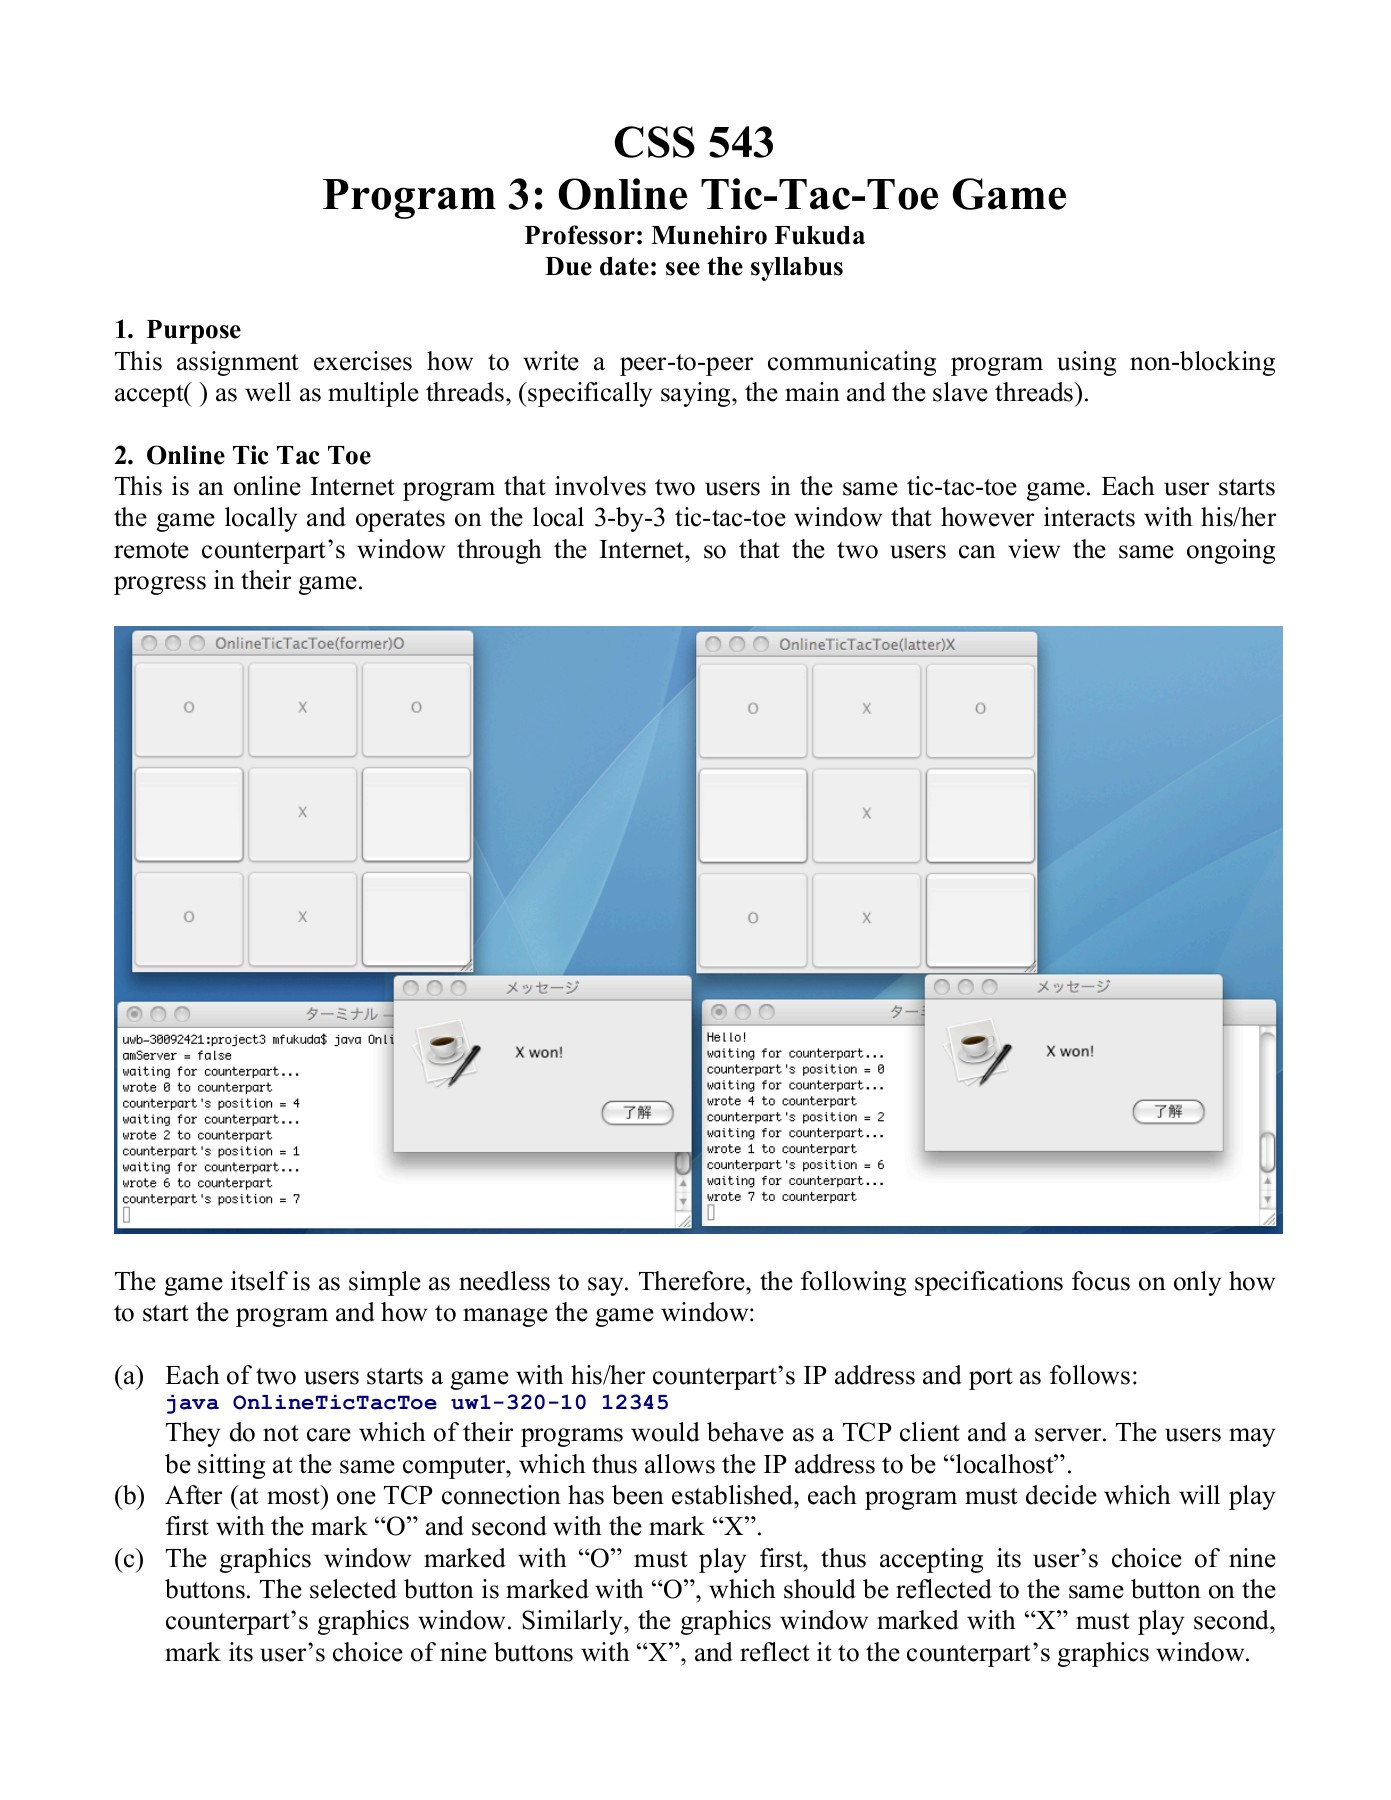 CSS 543 Program 3: Online Tic-Tac-Toe Game Pages 1 - 7 - Text